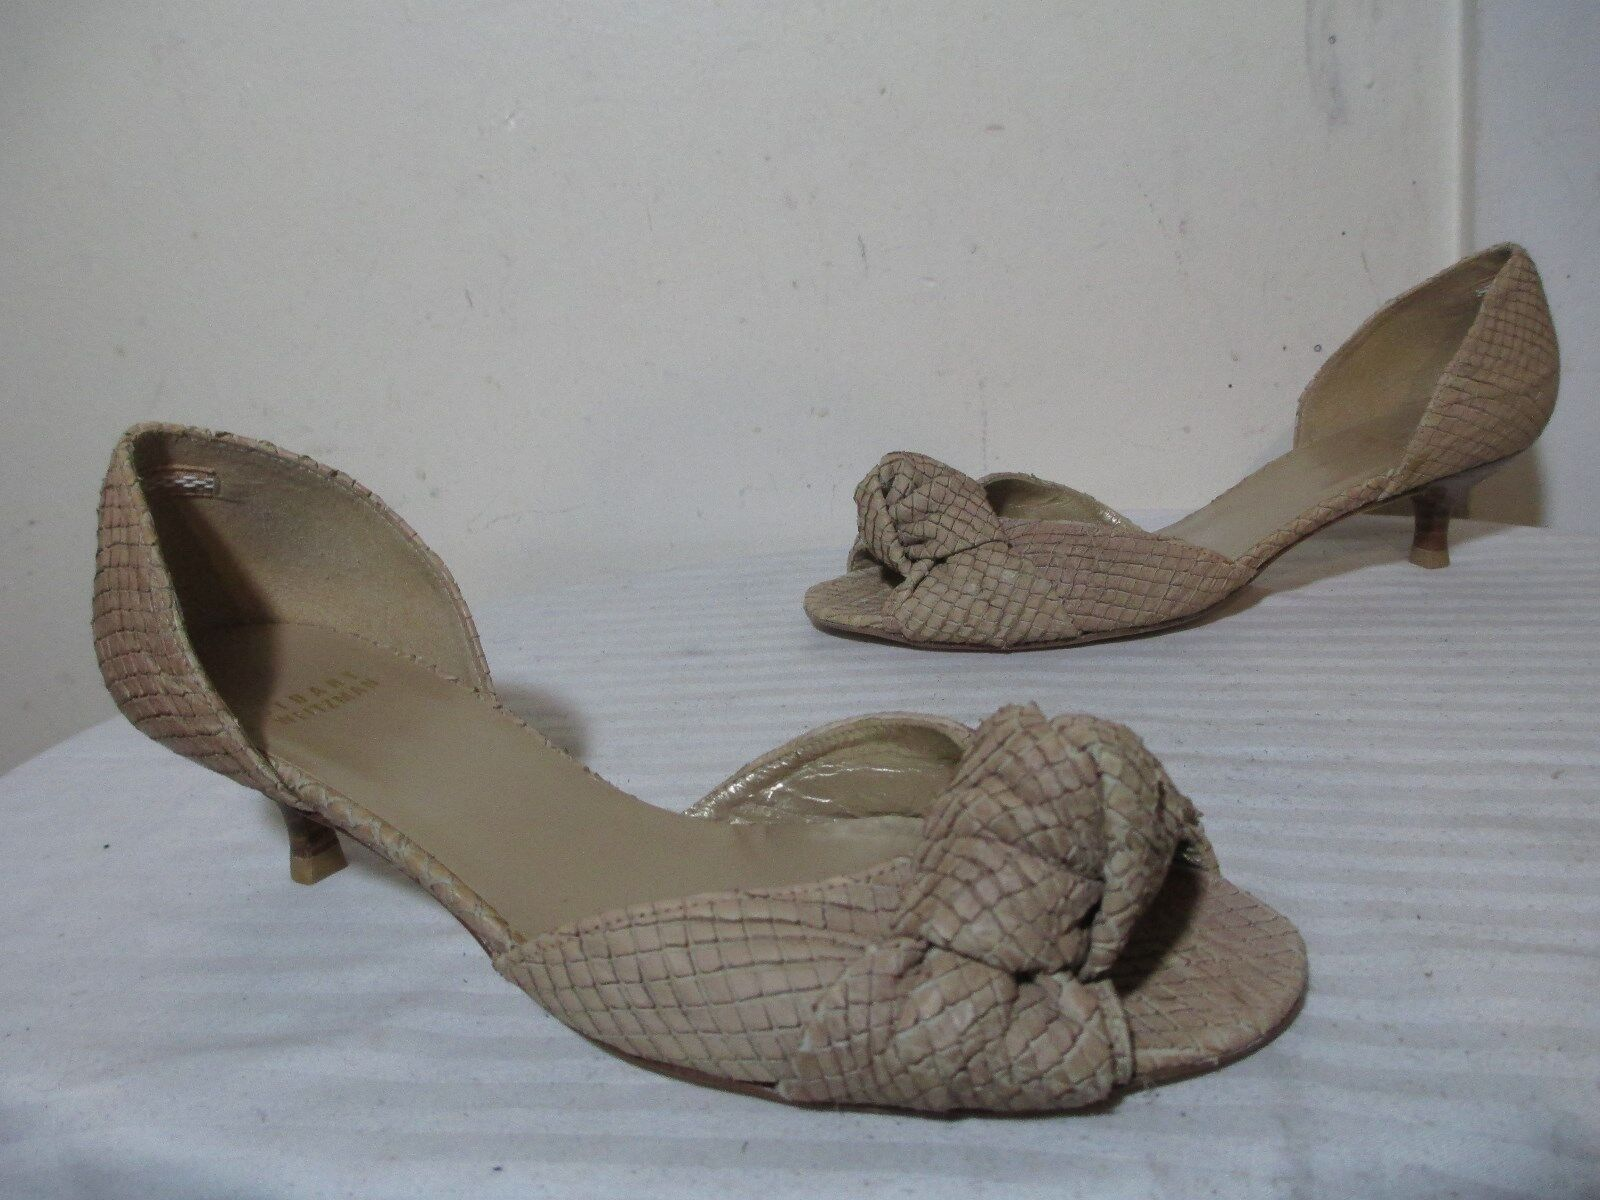 STUART WEITZMAN TAN SNAKESKIN EMBOSSED EMBOSSED EMBOSSED LEATHER KNOT TOP OPEN TOE DORSAY PUMP 8½M 0b0209